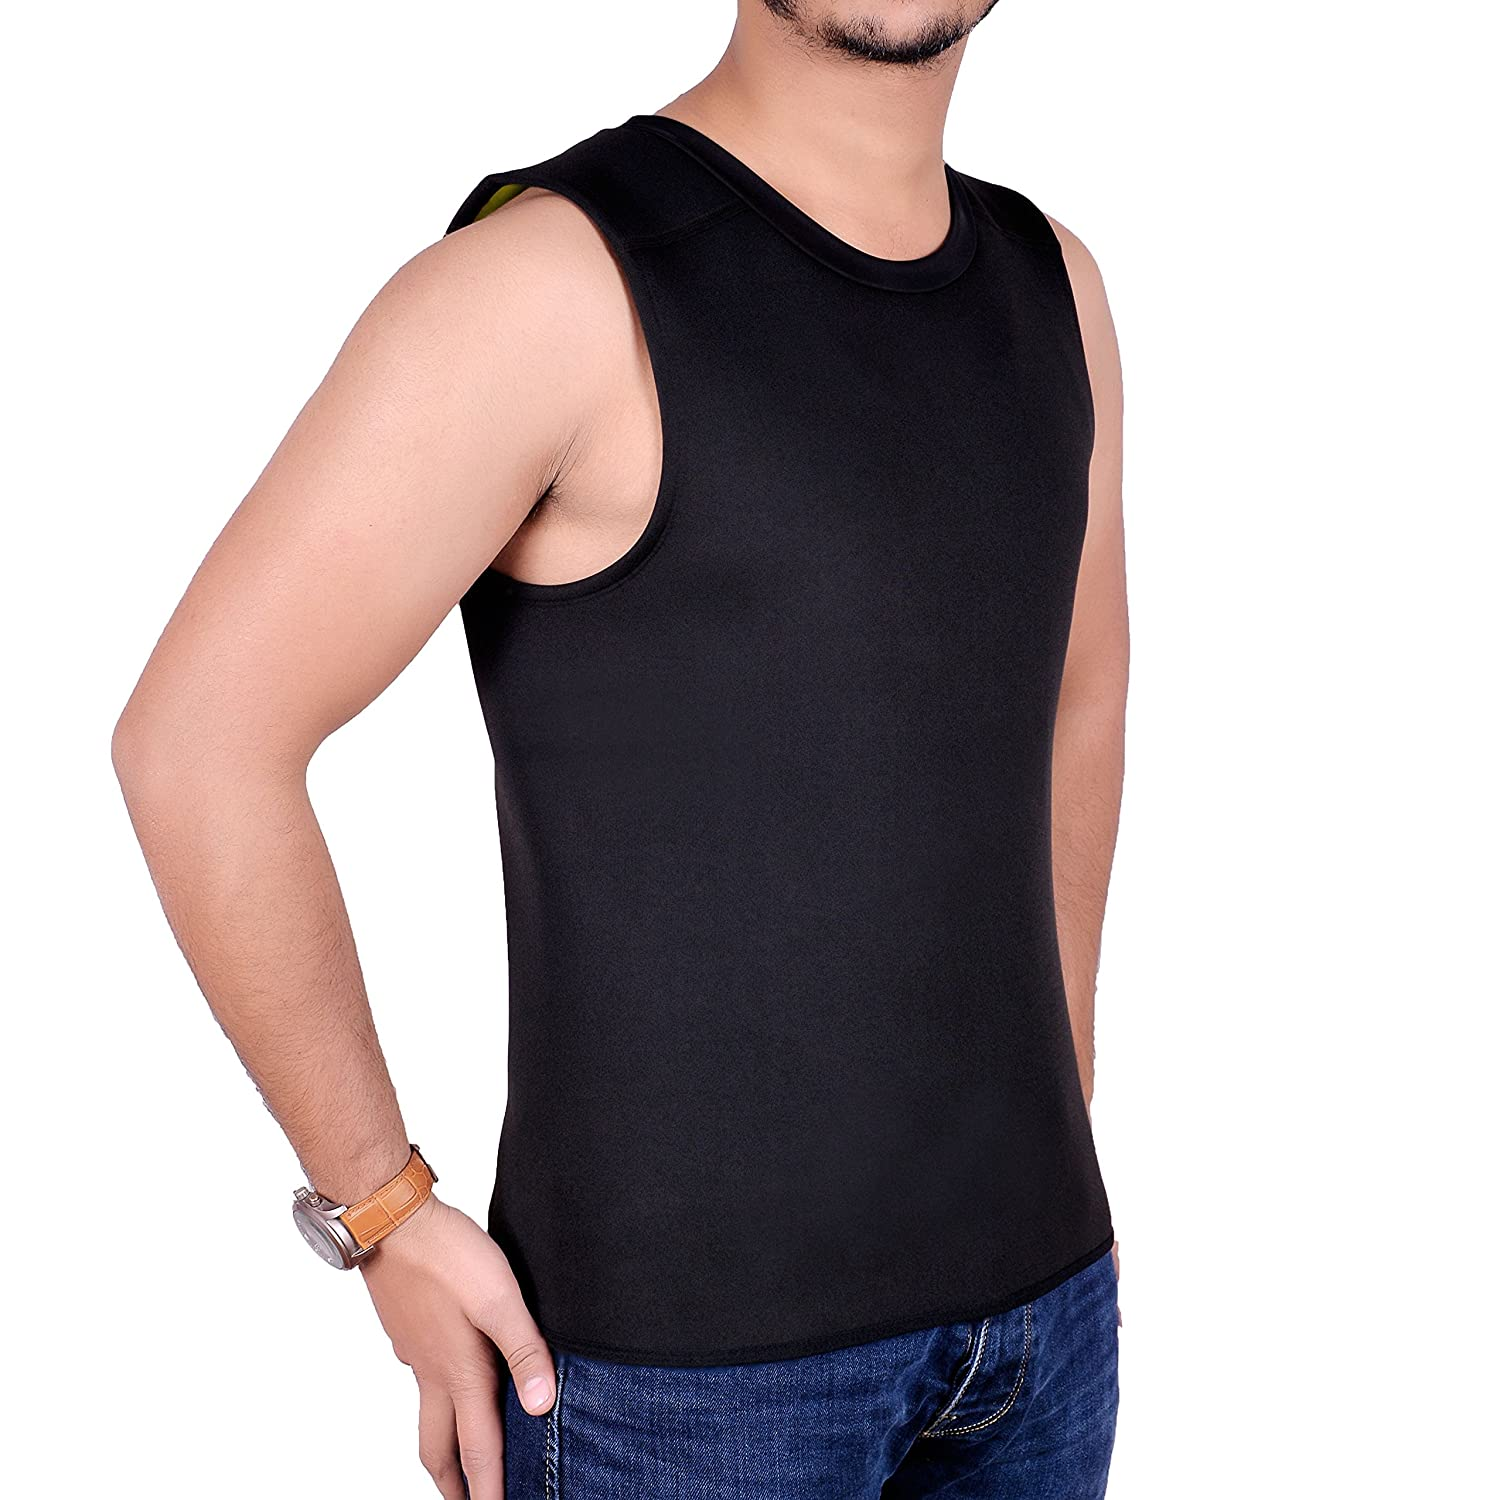 404f5d90ec438 Amazon.com   ARD Men s Body Shaper Sauna Vest Neoprene Tank Top ...